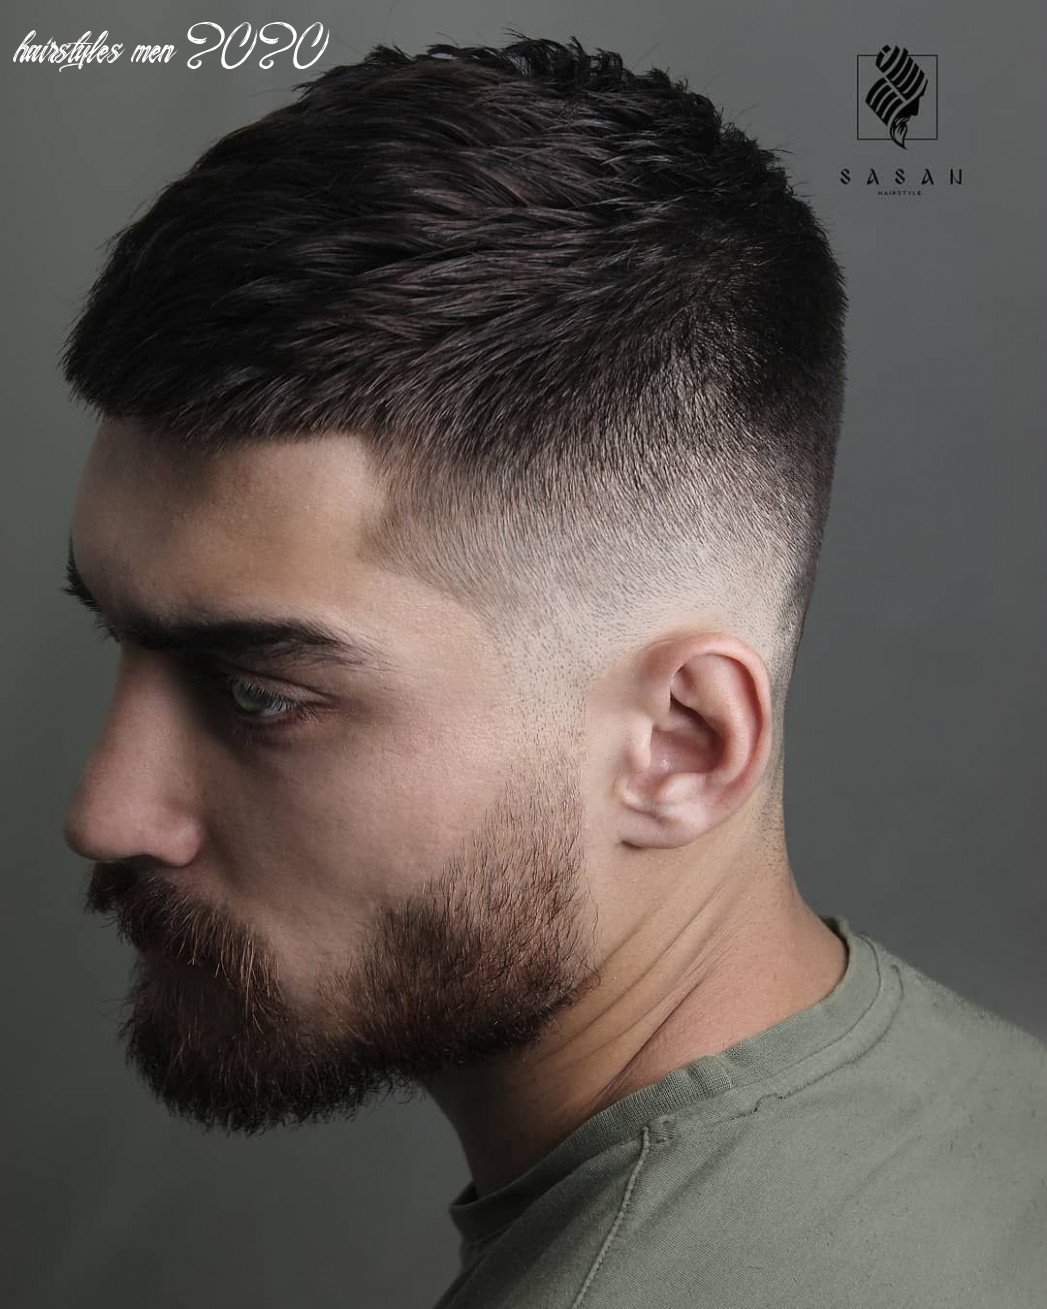 11 cool haircuts for men (1111 styles) | young men haircuts, mens